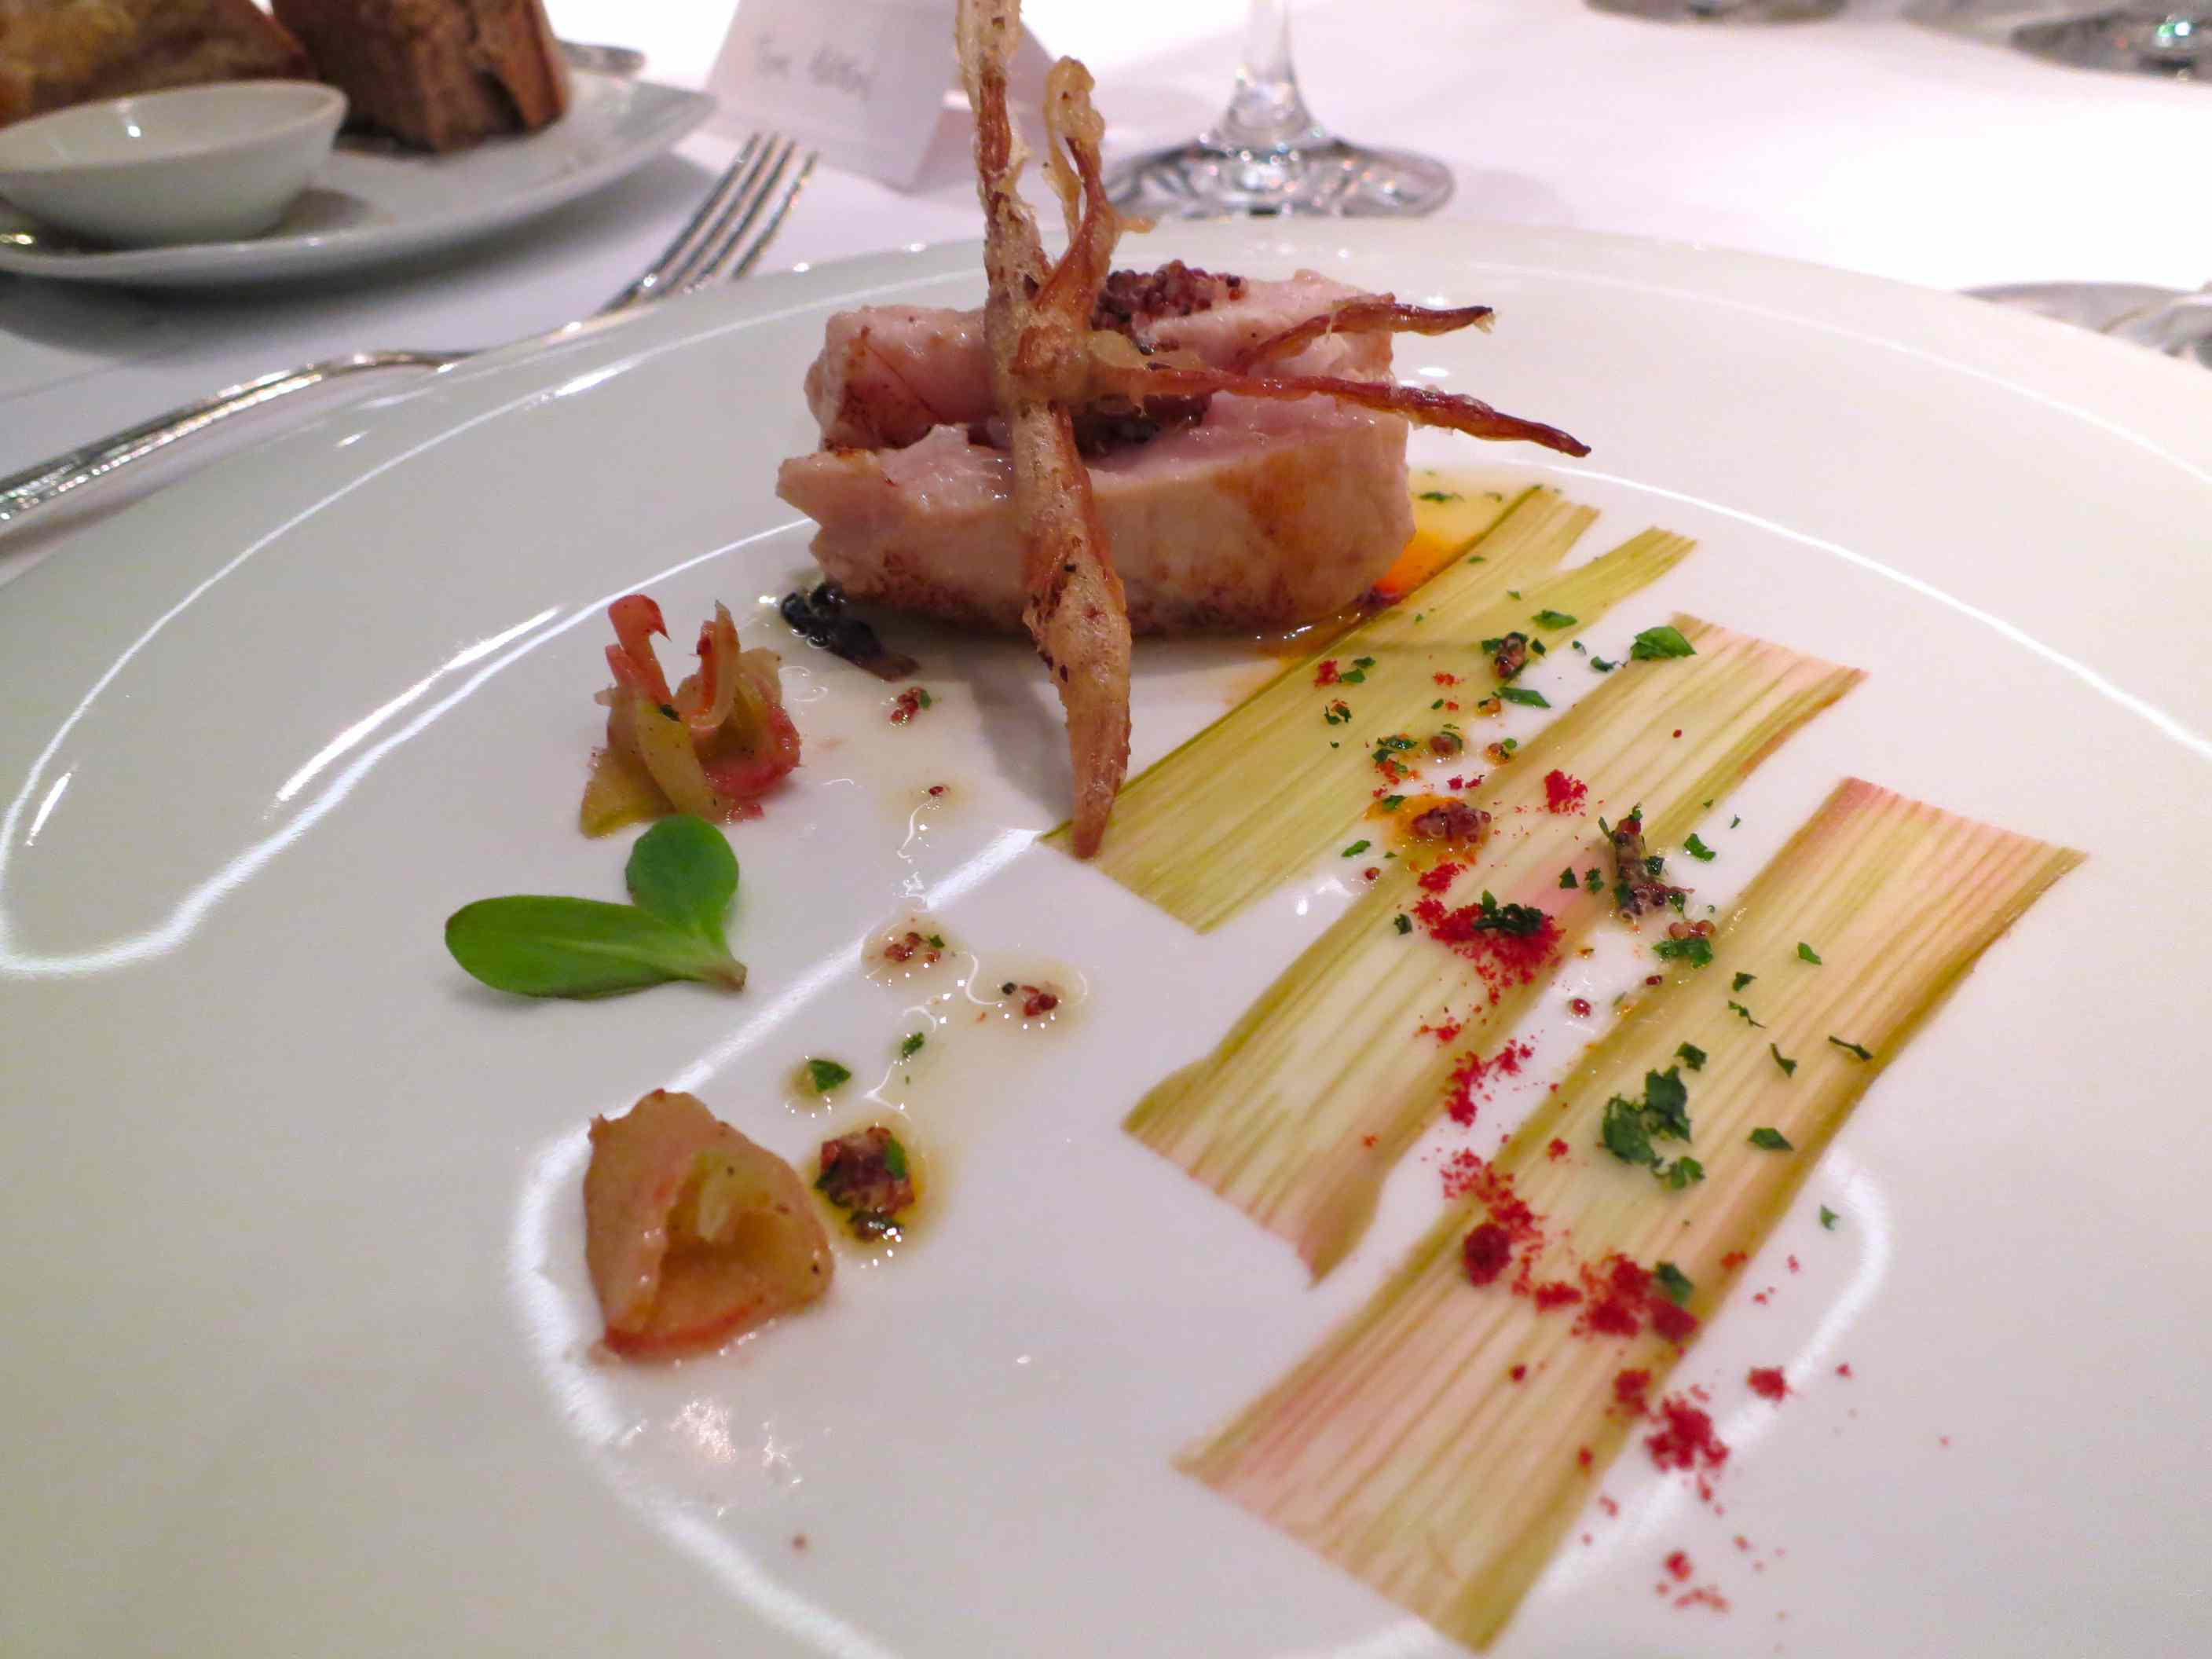 White Tuna with Rhubarb and Lillies at Restaurante Arzak